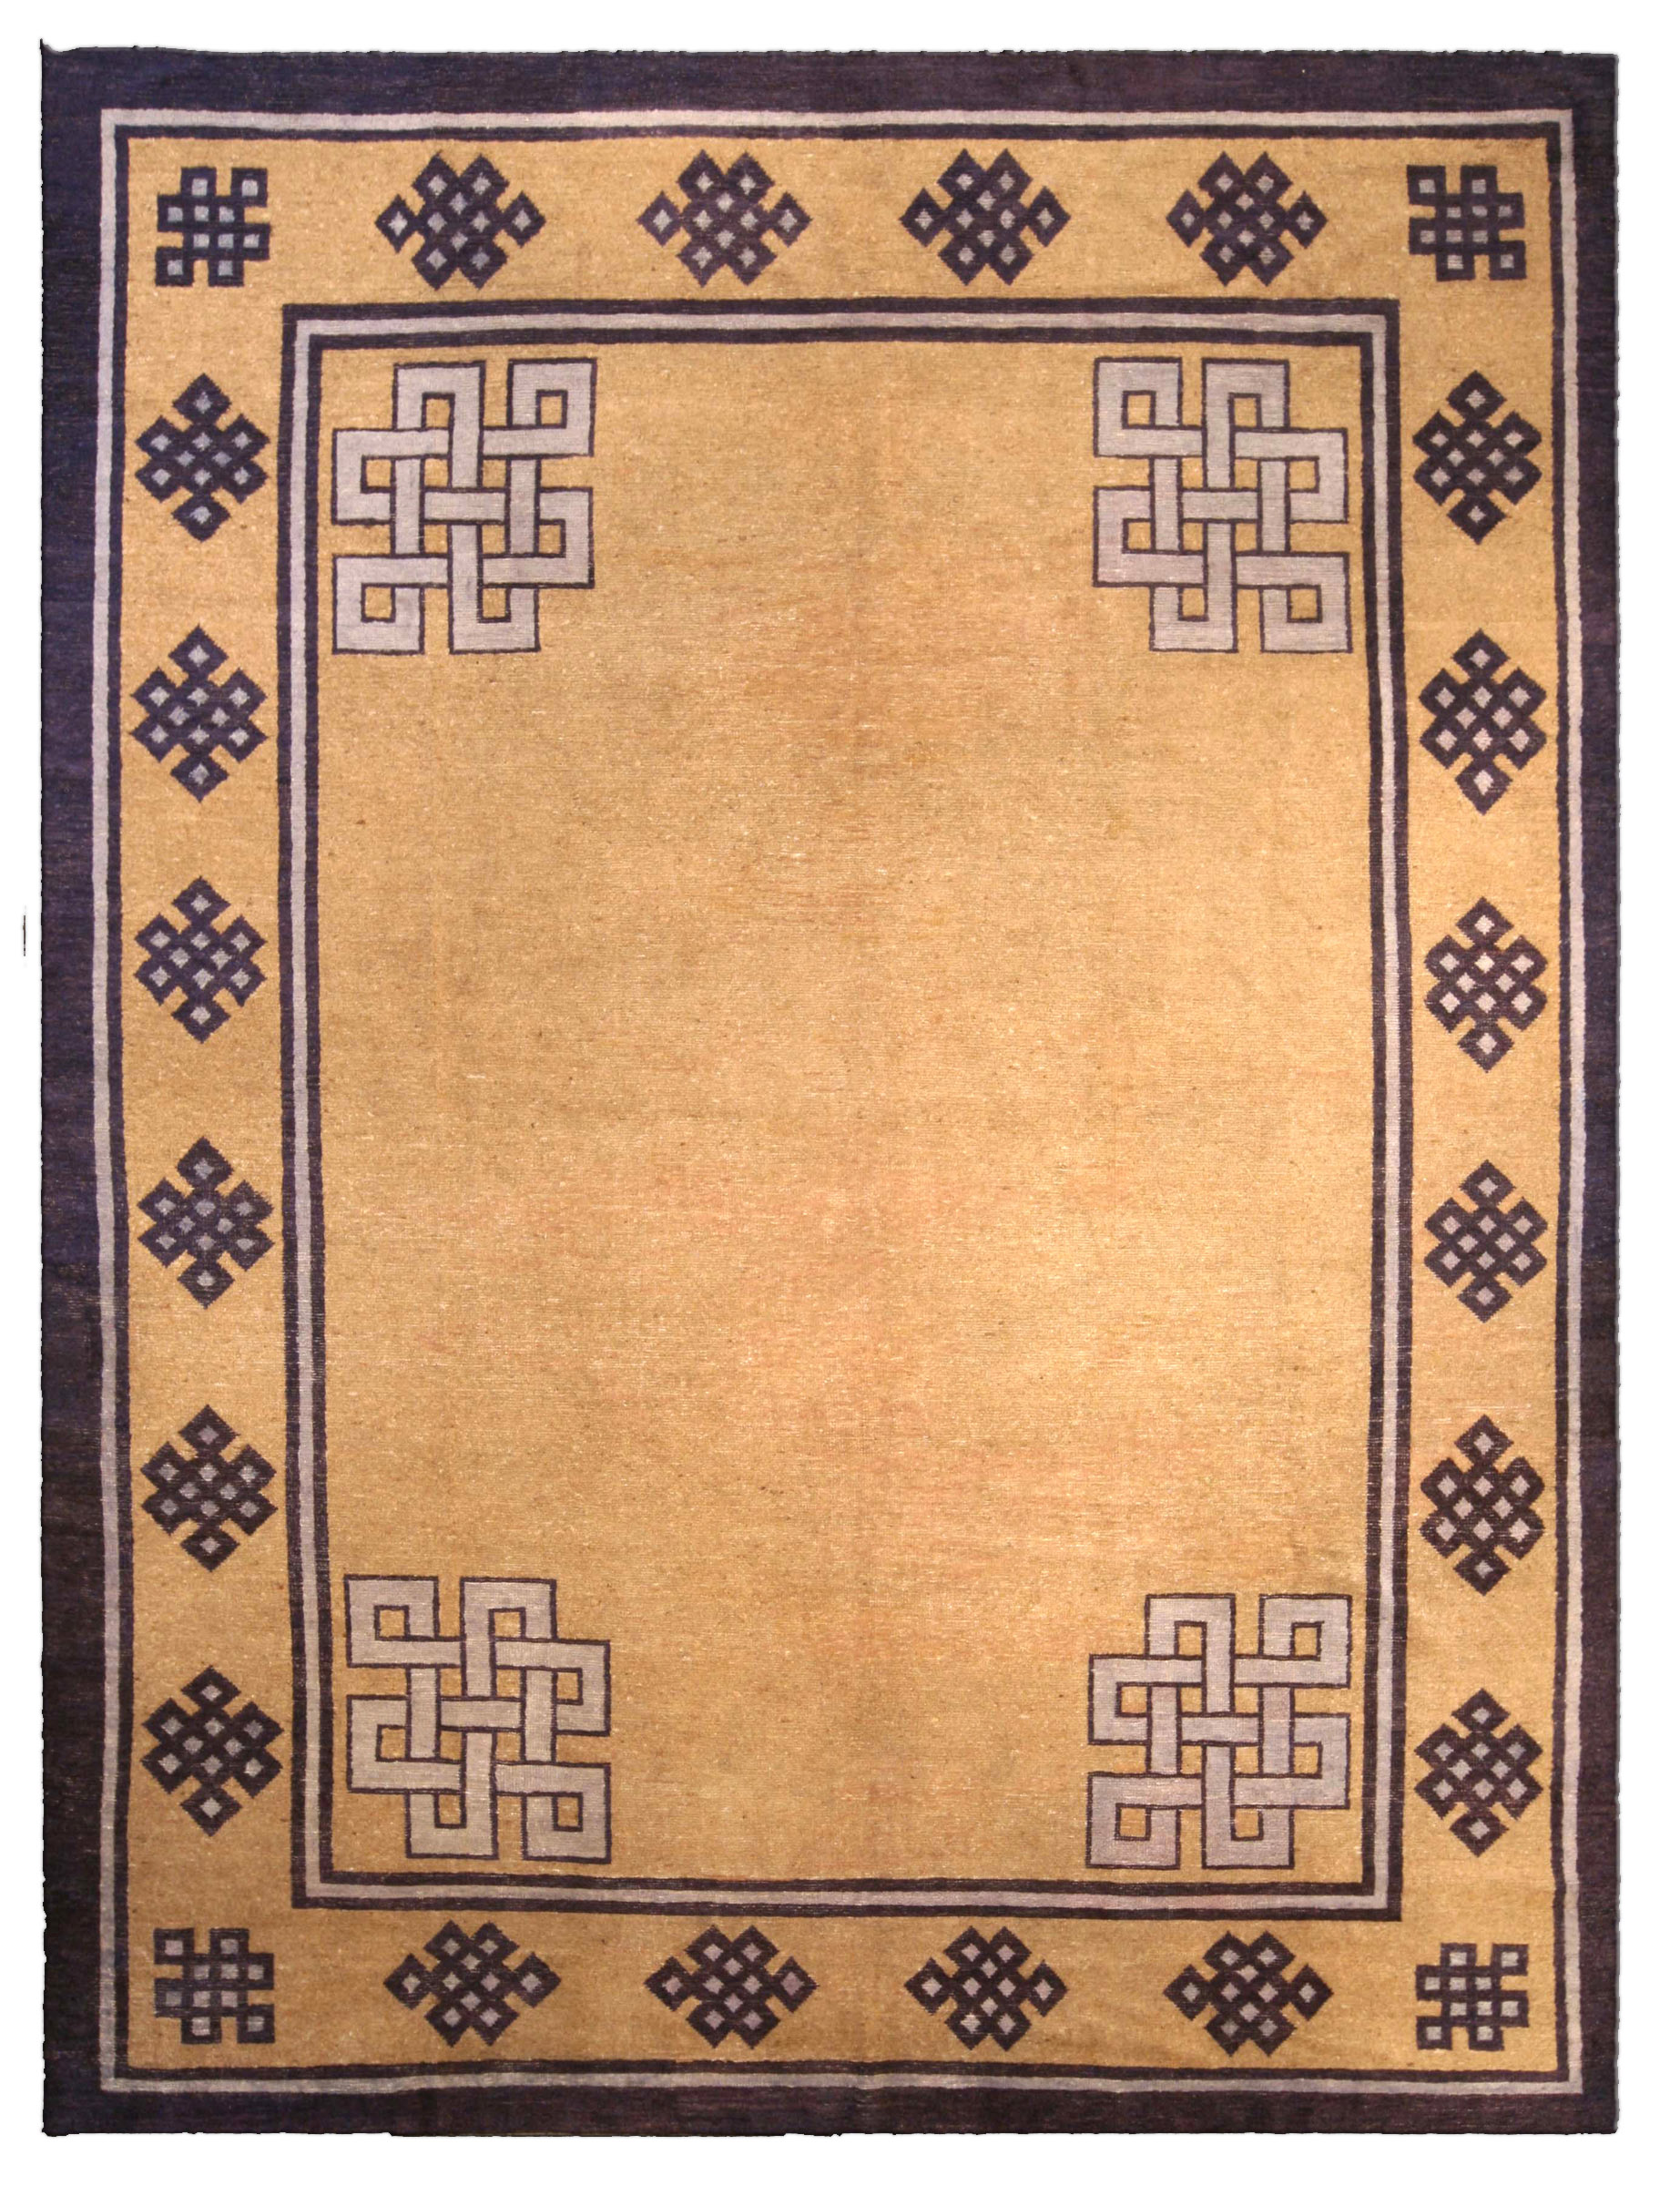 Chinese Rug Antique Rug Bb4146 By Doris Leslie Blau